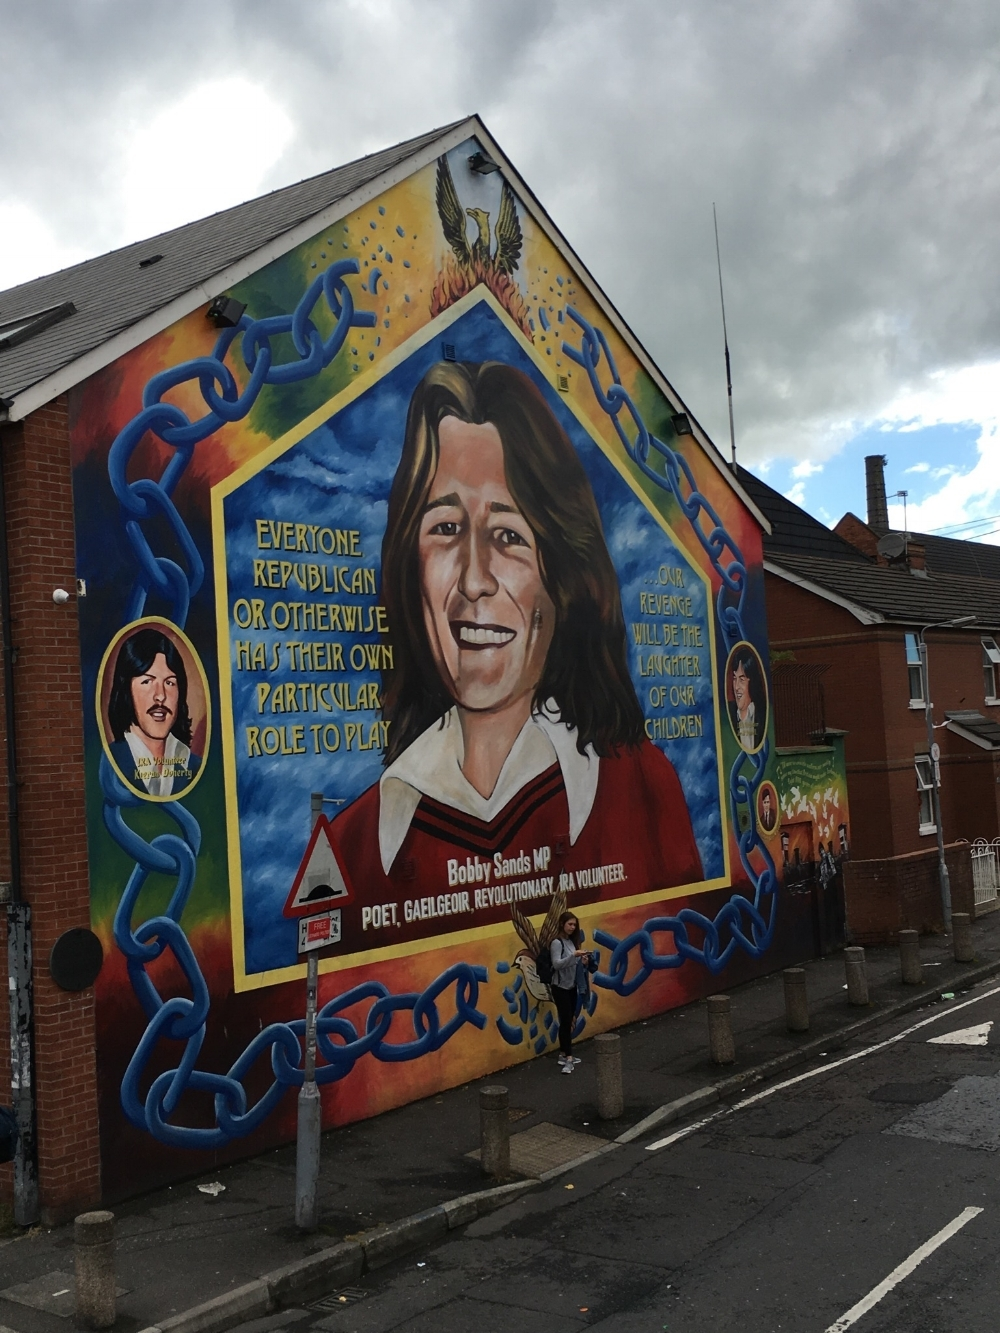 memorial for bobby sands, one of the IRA prisoners who died in a 1981 hunger strike